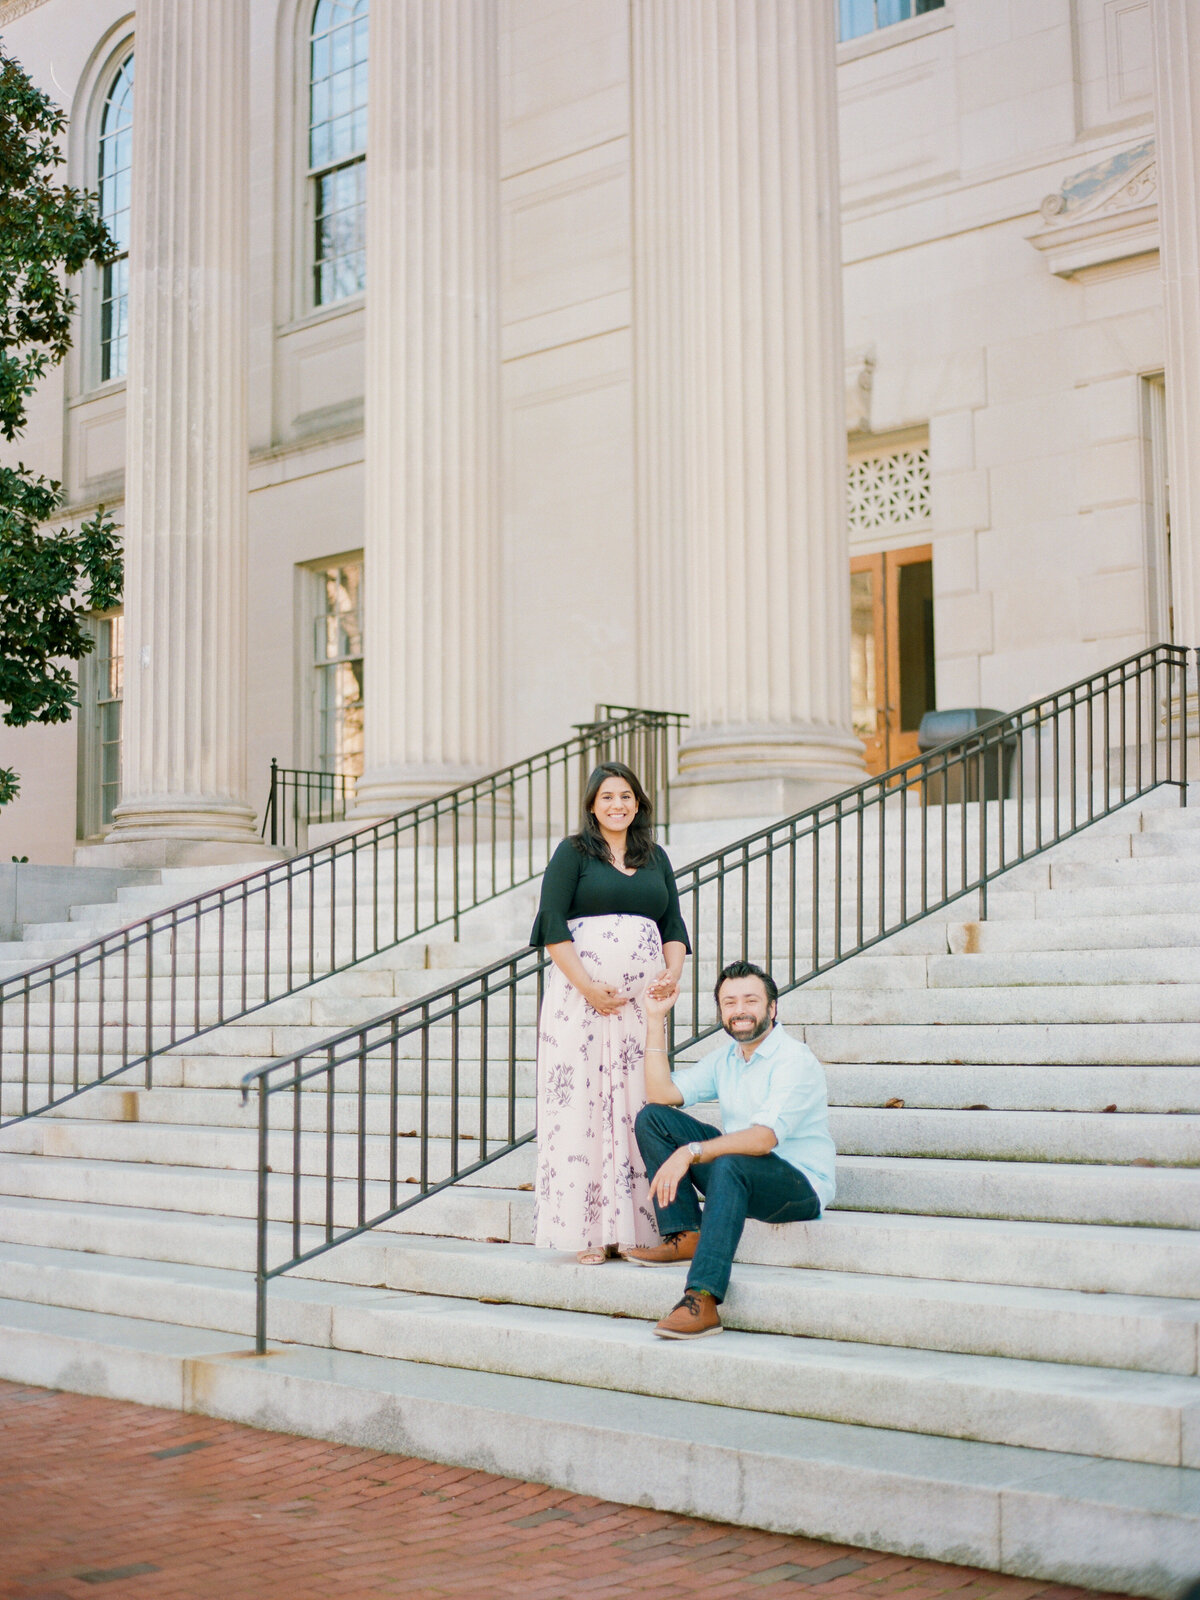 Husband and wife pose on steps during maternity portrait session